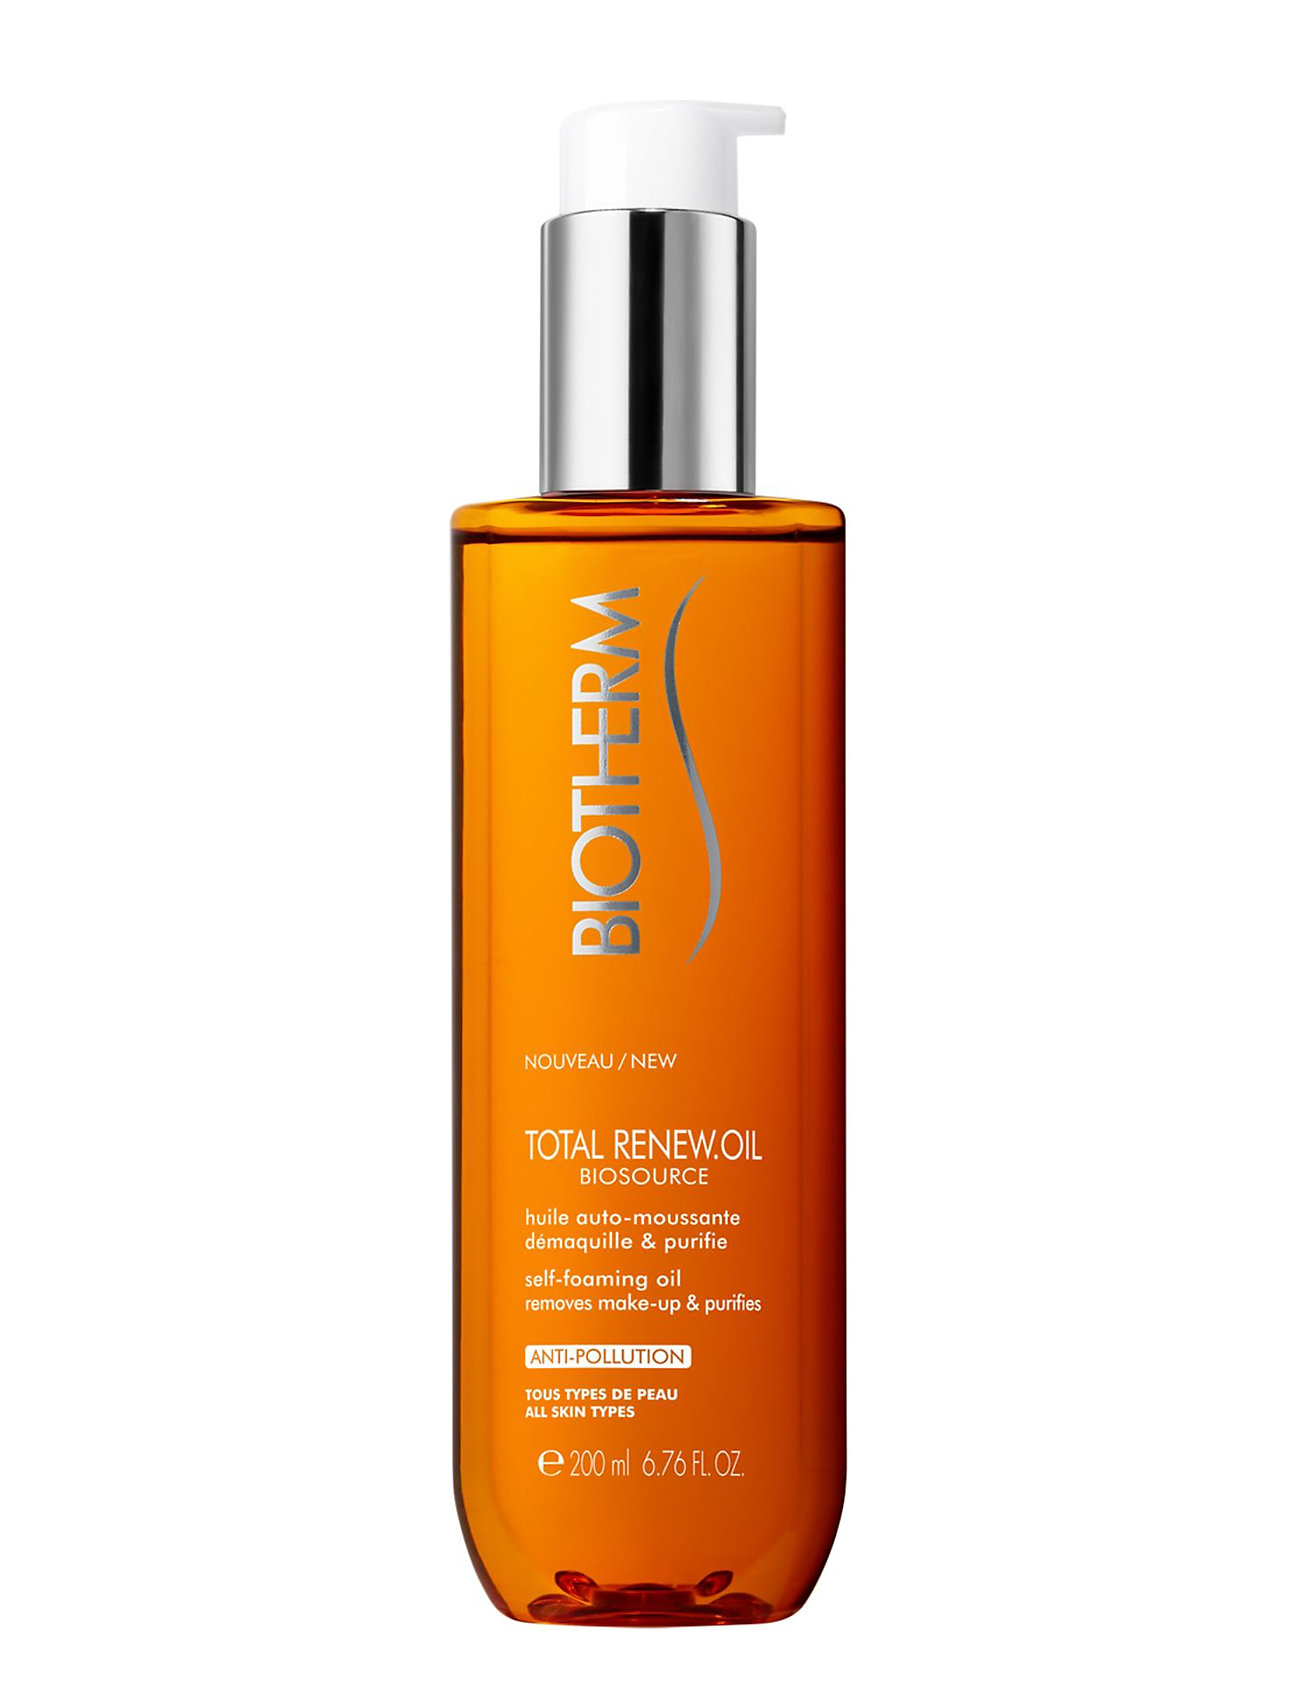 biotherm Biosource total renew oil 200 ml fra boozt.com dk